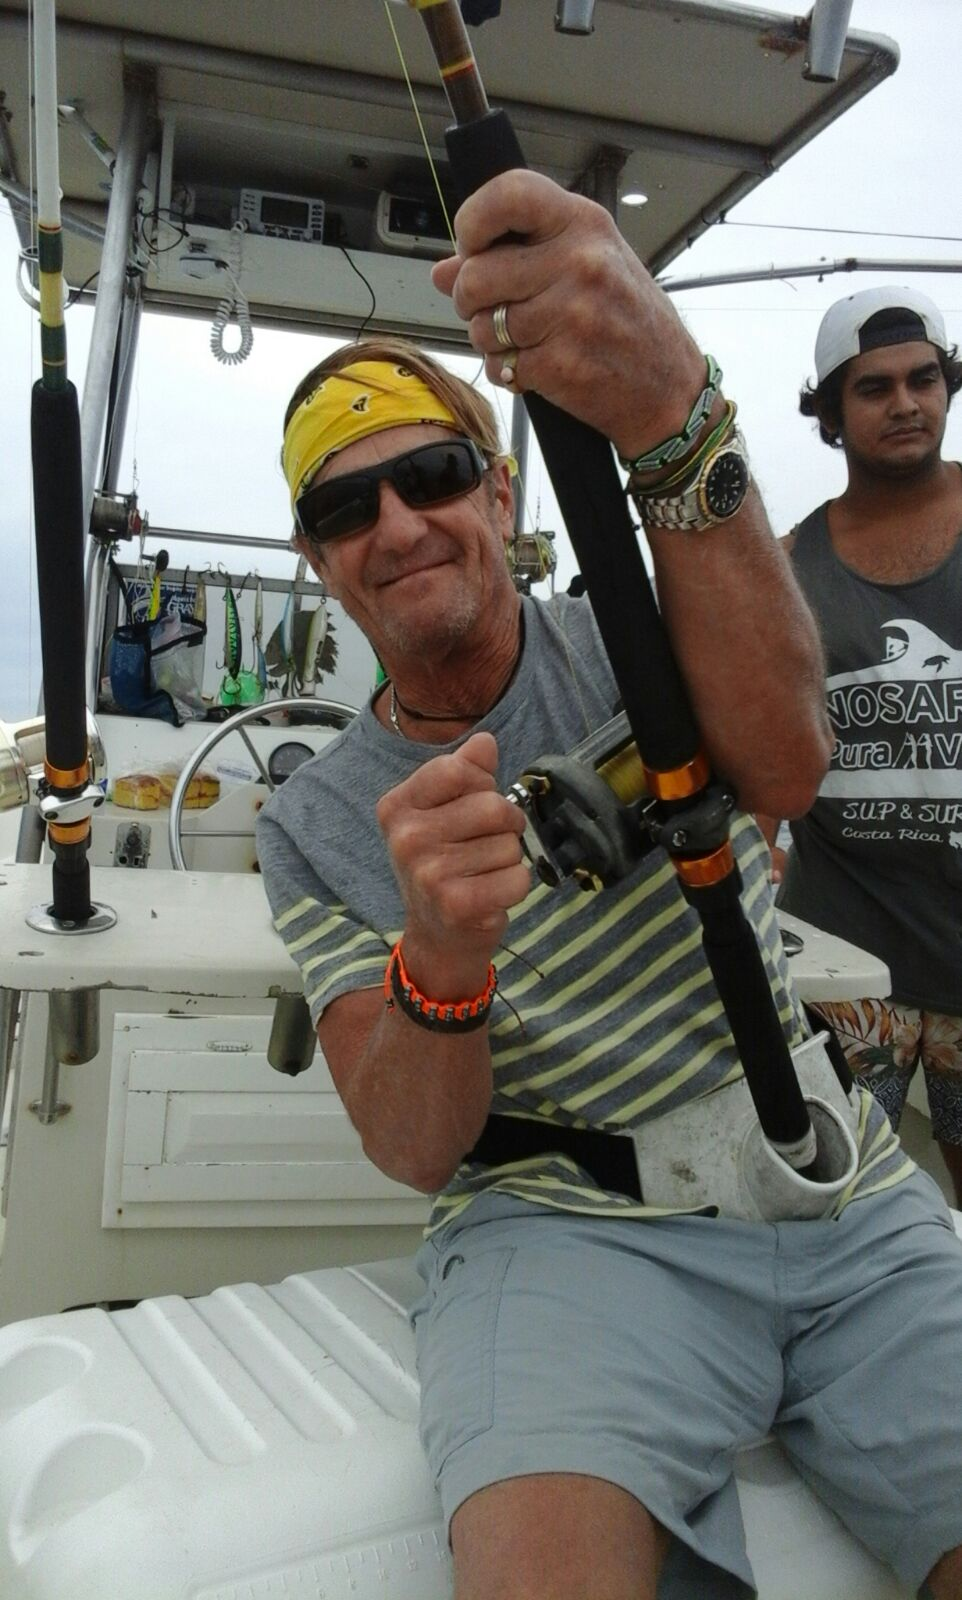 Big smiles for happy fisherman on the Cowboy 38,  during a private charter tour off the coast of Nosara, Costa Rica.